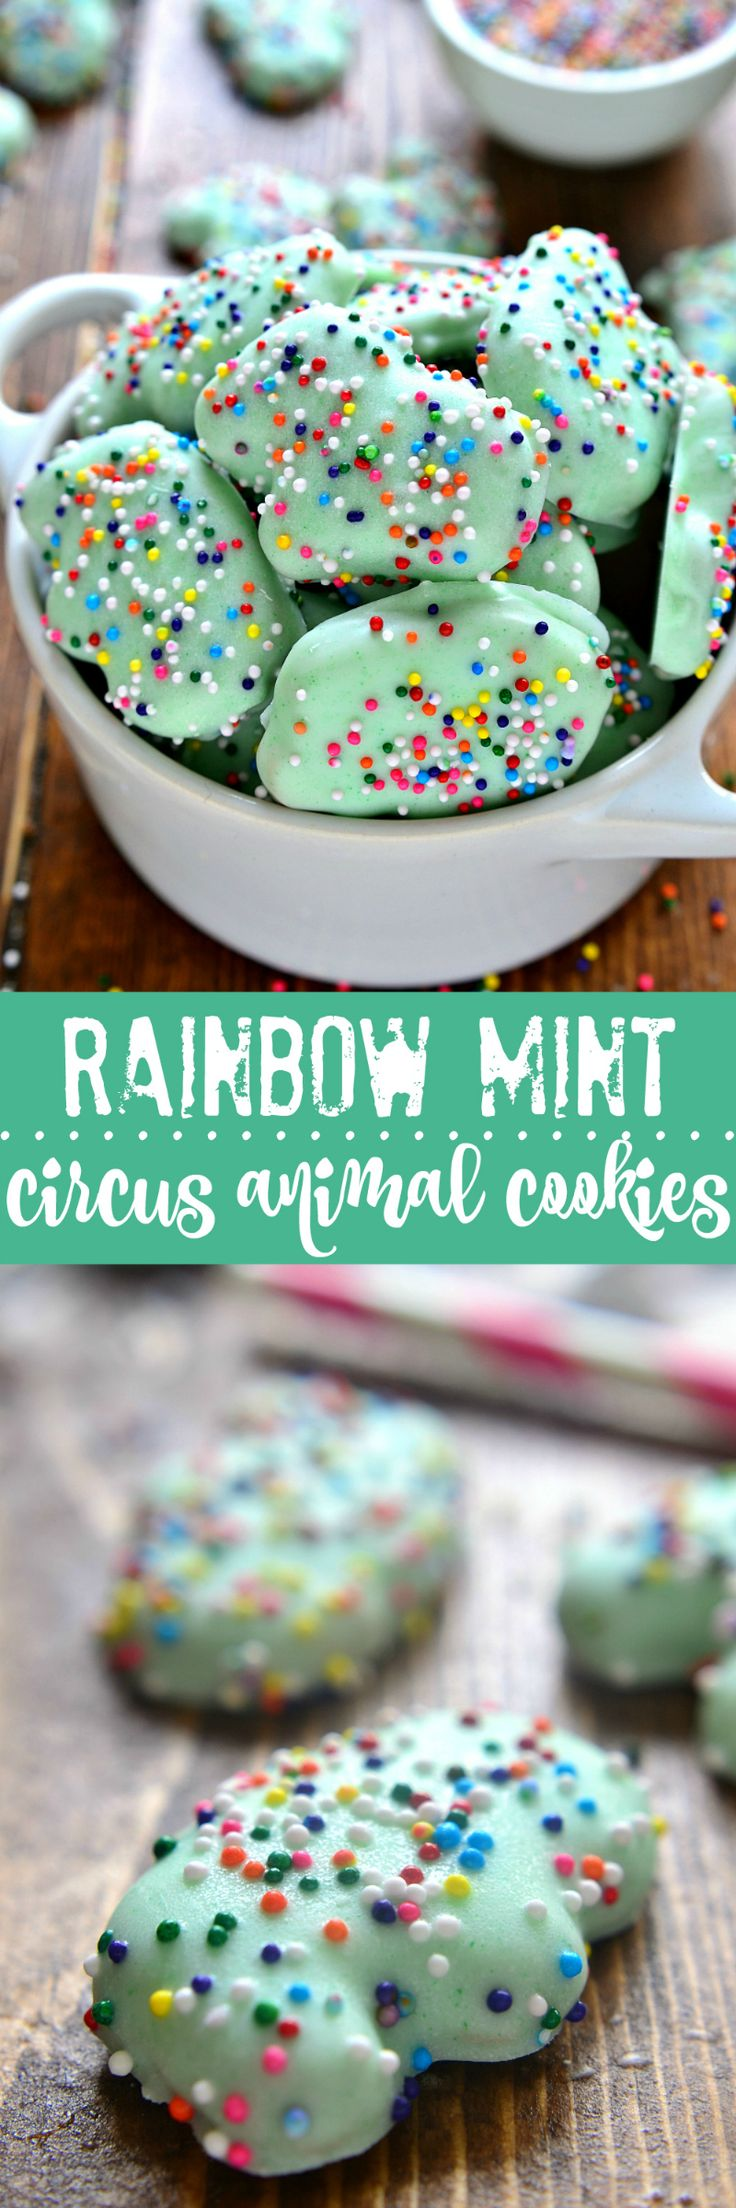 Homemade Mint Circus Animal Cookies with rainbow sprinkles! Perfect for mint lovers, perfect for St. Patrick's Day!